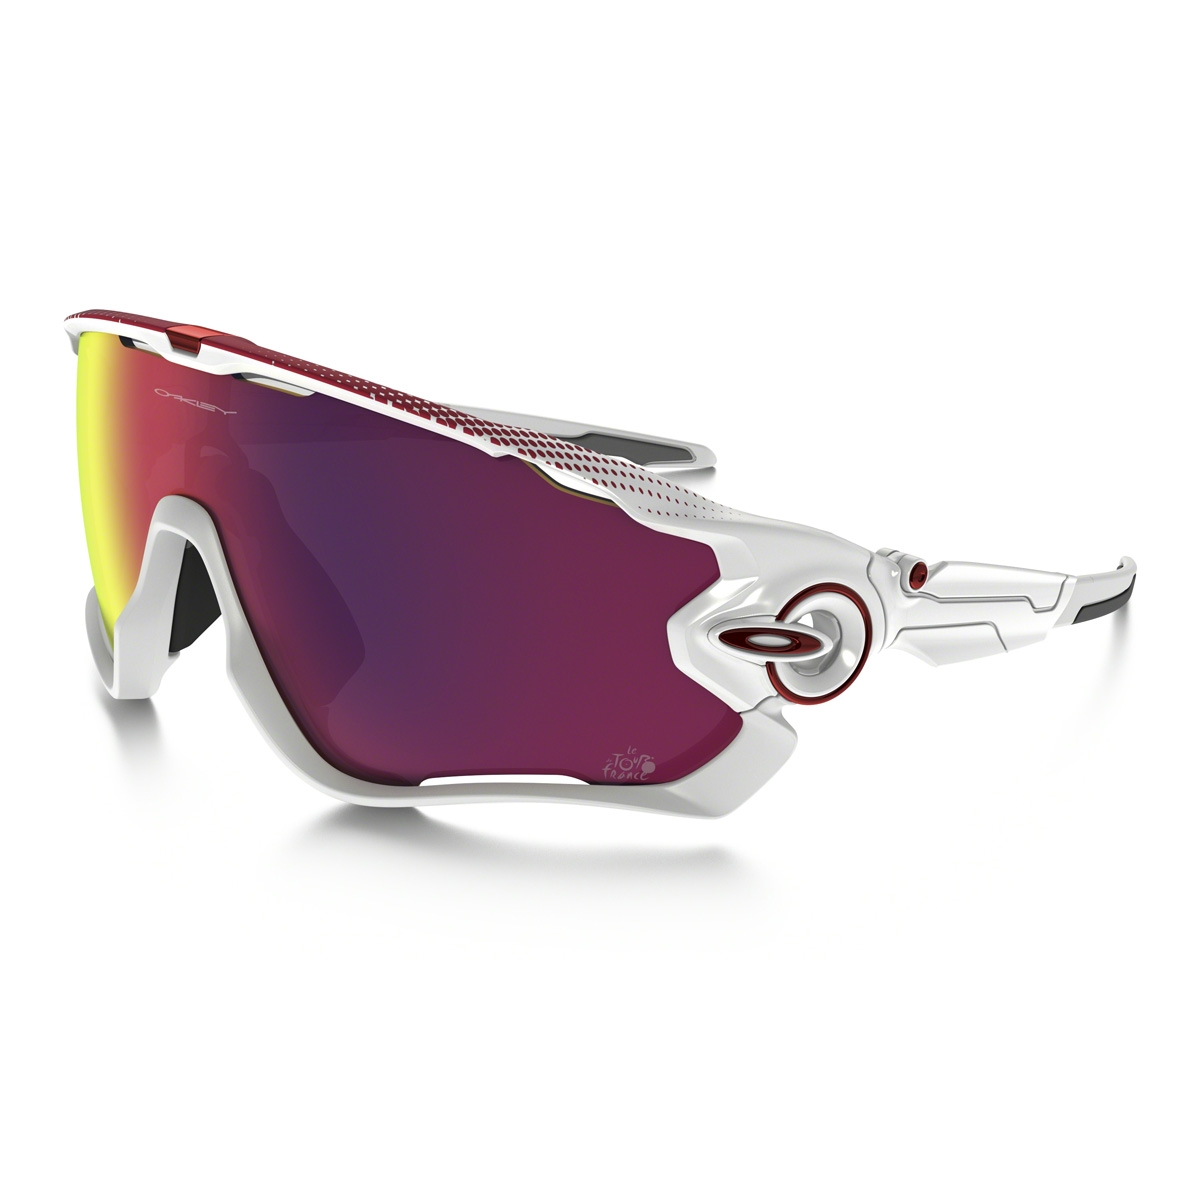 8f75c4a97e2 Image of Oakley Jawbreaker Prizm Road Tour De France Sunglasses - Polished  White Frame   Prizm